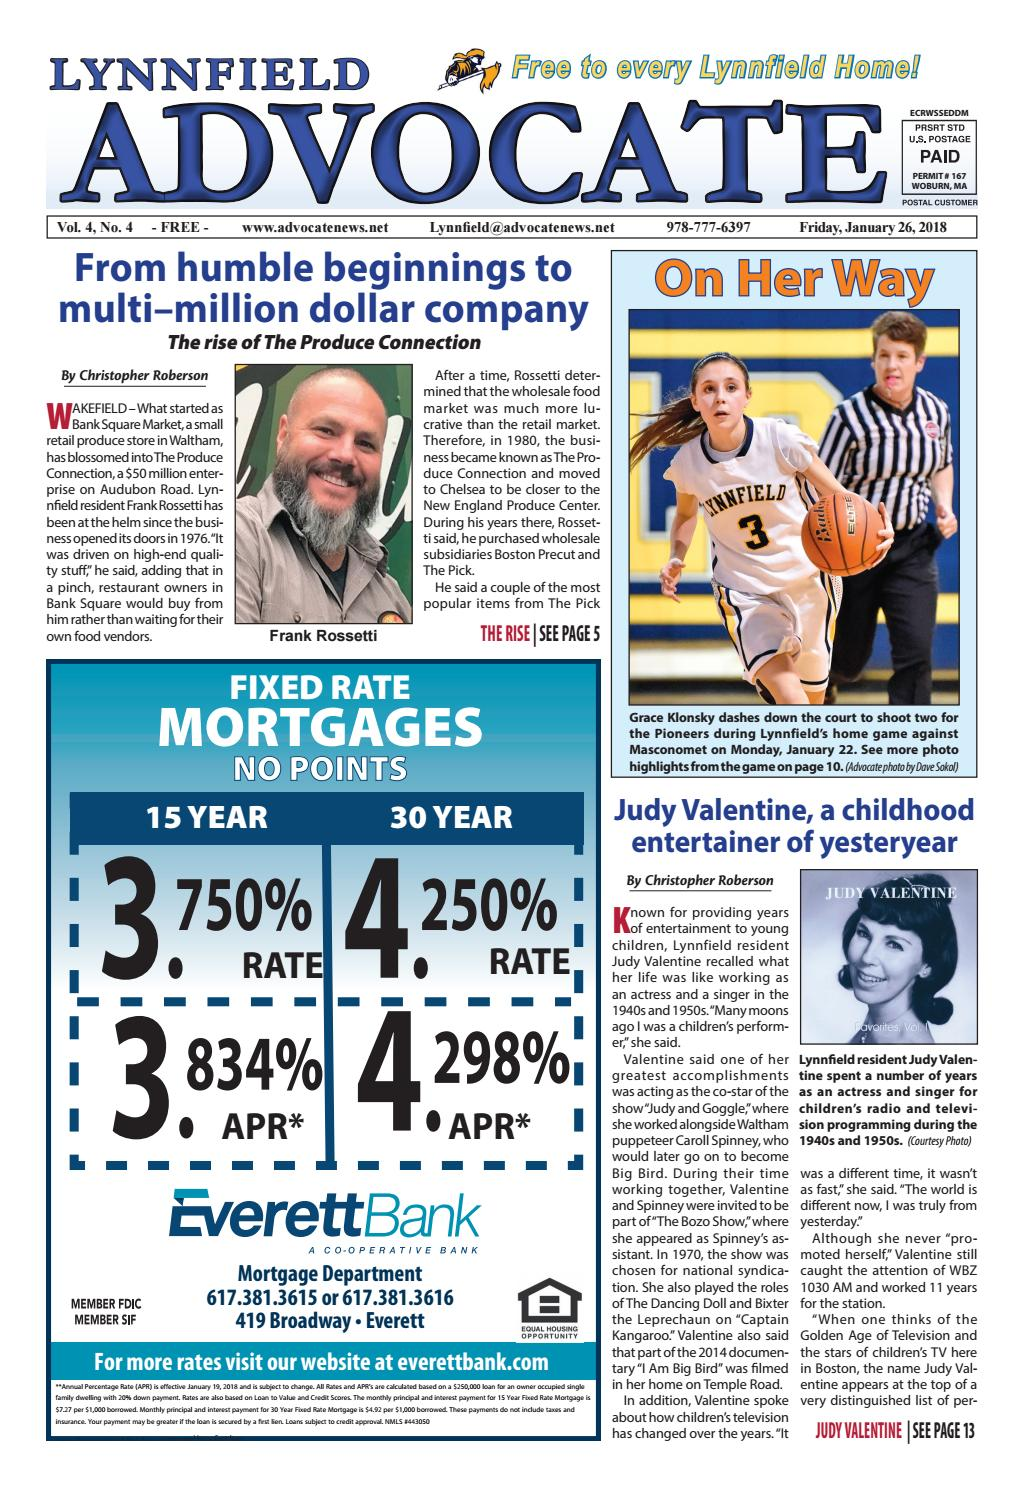 THE LYNNFIELD ADVOCATE - Friday, January 26, 2018 by Mike